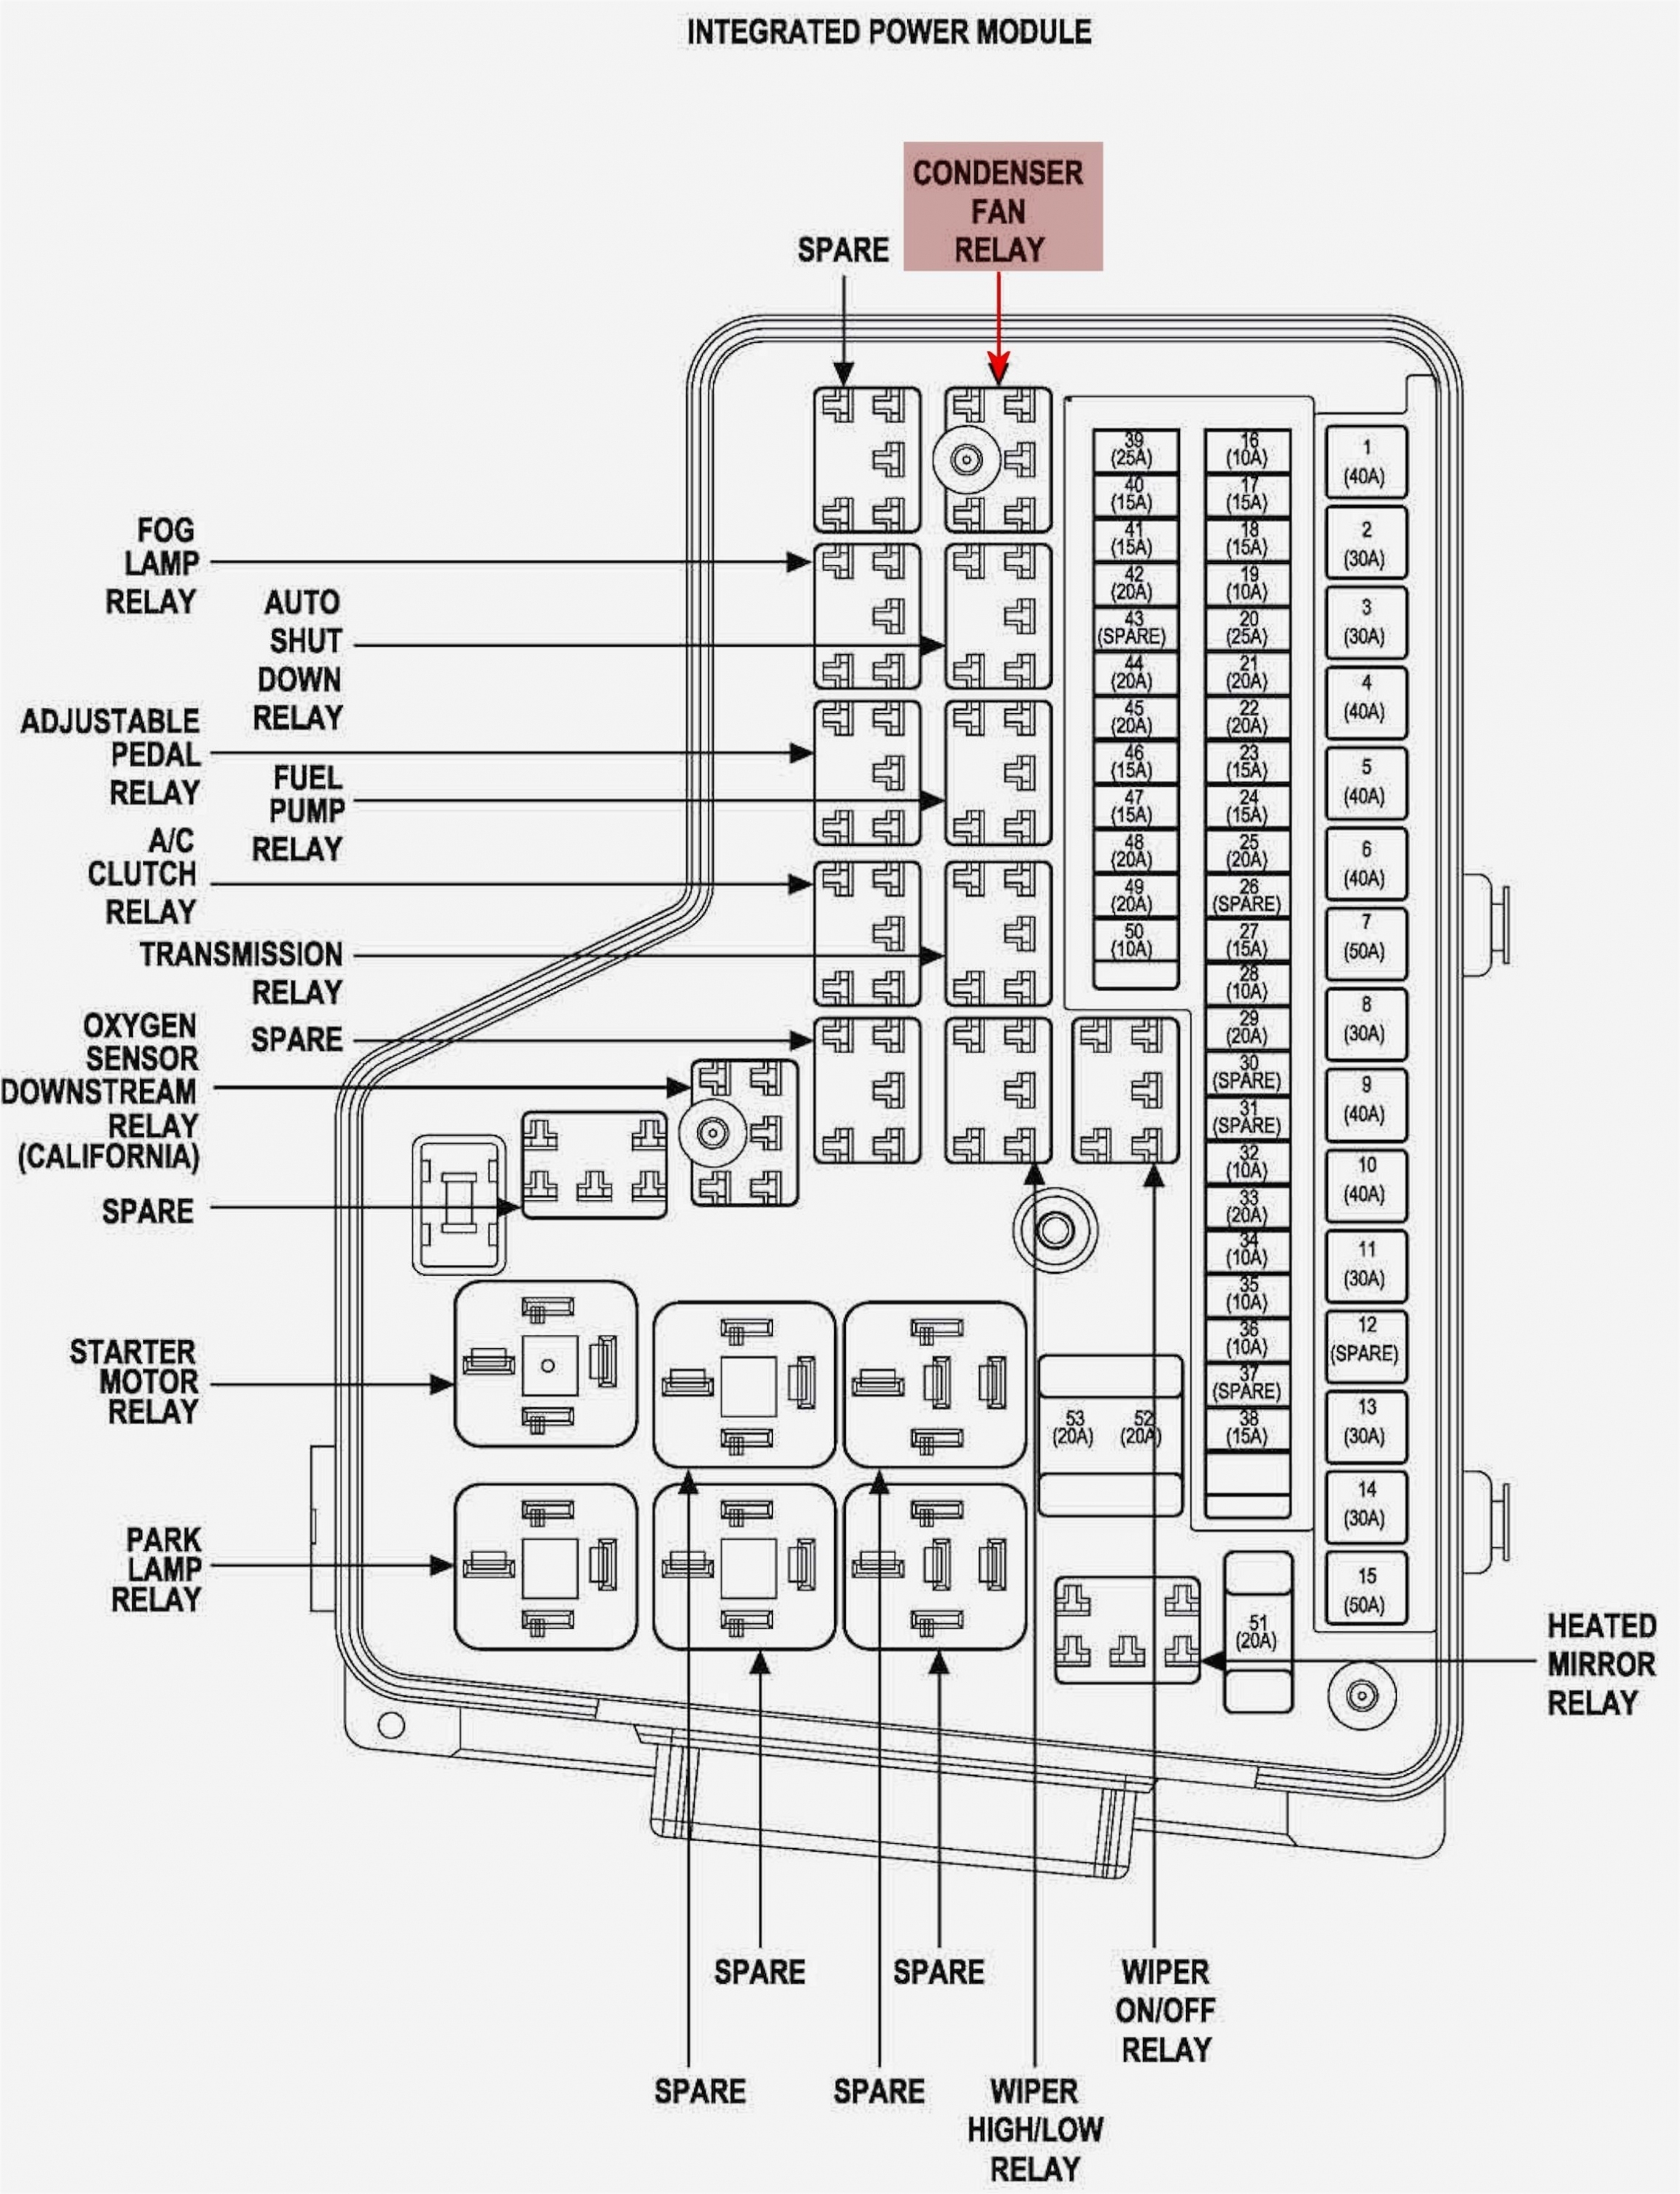 04 Dodge Ram 250 Fuse Box - Wiring Diagrams Mon on 04 chevy silverado wiring diagram, 04 vw jetta wiring diagram, 04 dodge 2500 wiring diagram, 04 nissan xterra wiring diagram, 04 mini cooper wiring diagram, 04 honda accord wiring diagram, 04 chevy trailblazer wiring diagram, 04 lexus rx330 wiring diagram, 04 volvo xc90 wiring diagram, 04 dodge neon wiring diagram,